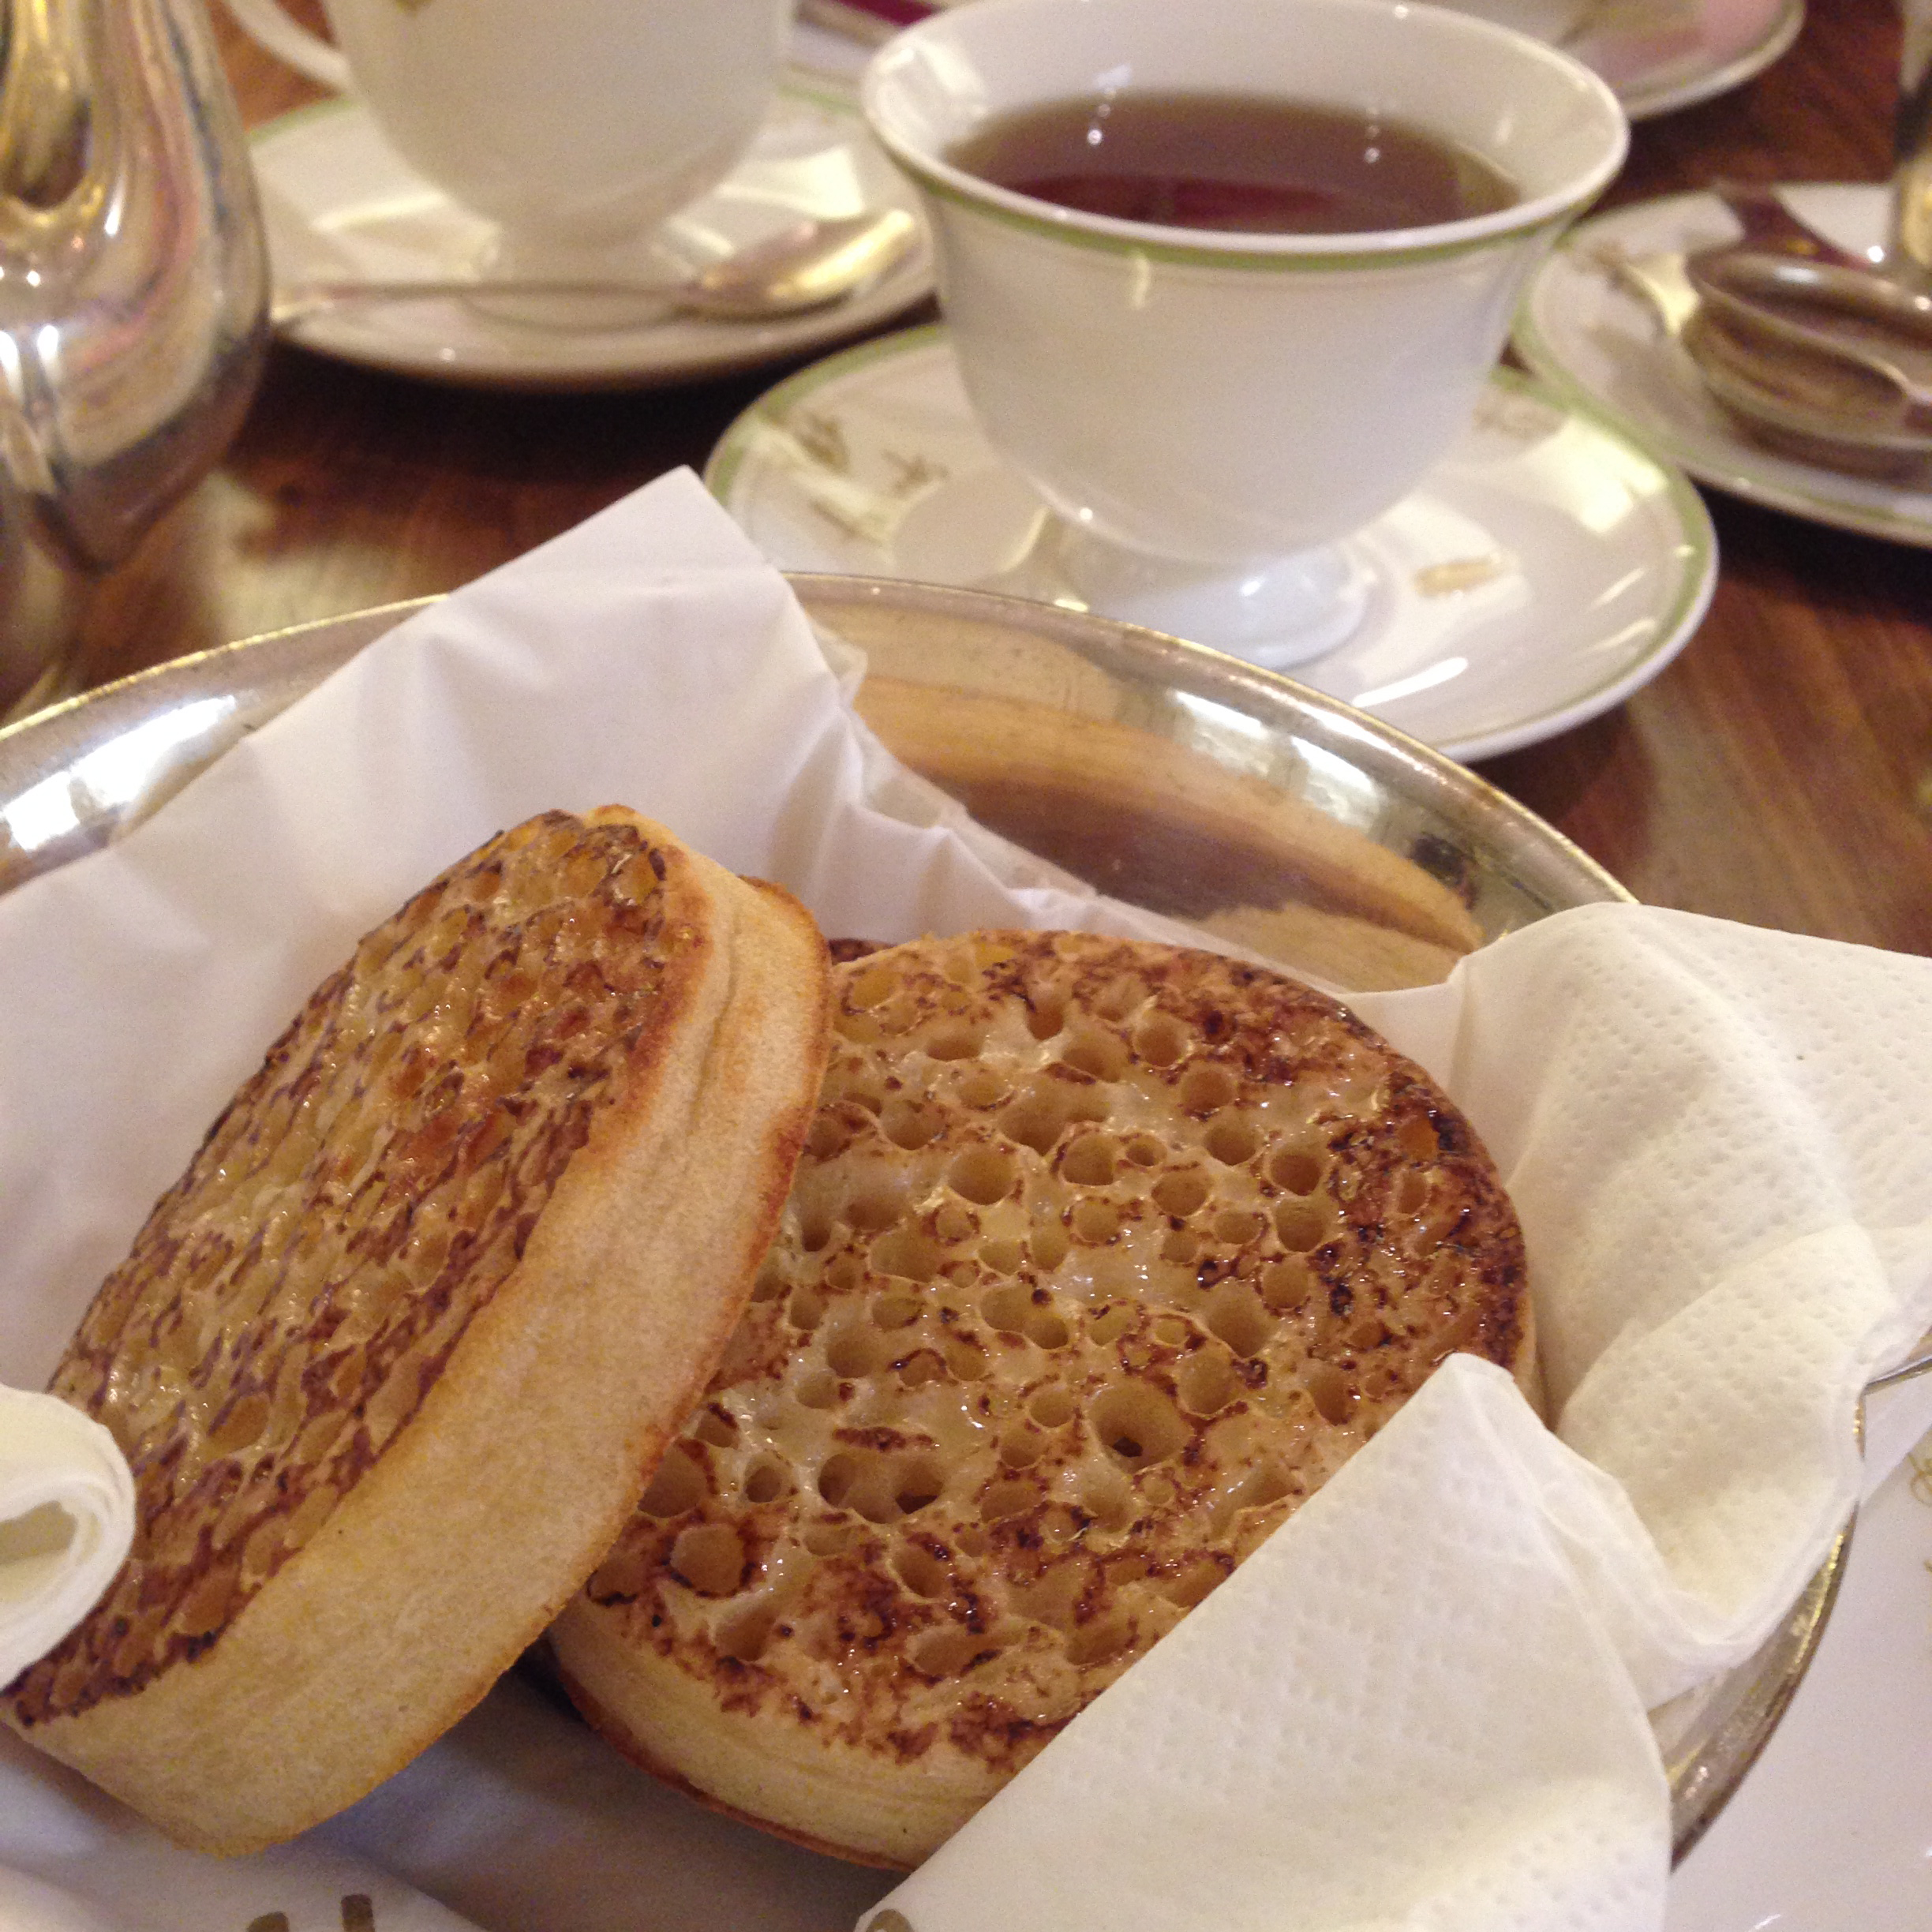 Crumpets & Tea at the Harrods Tea Room.